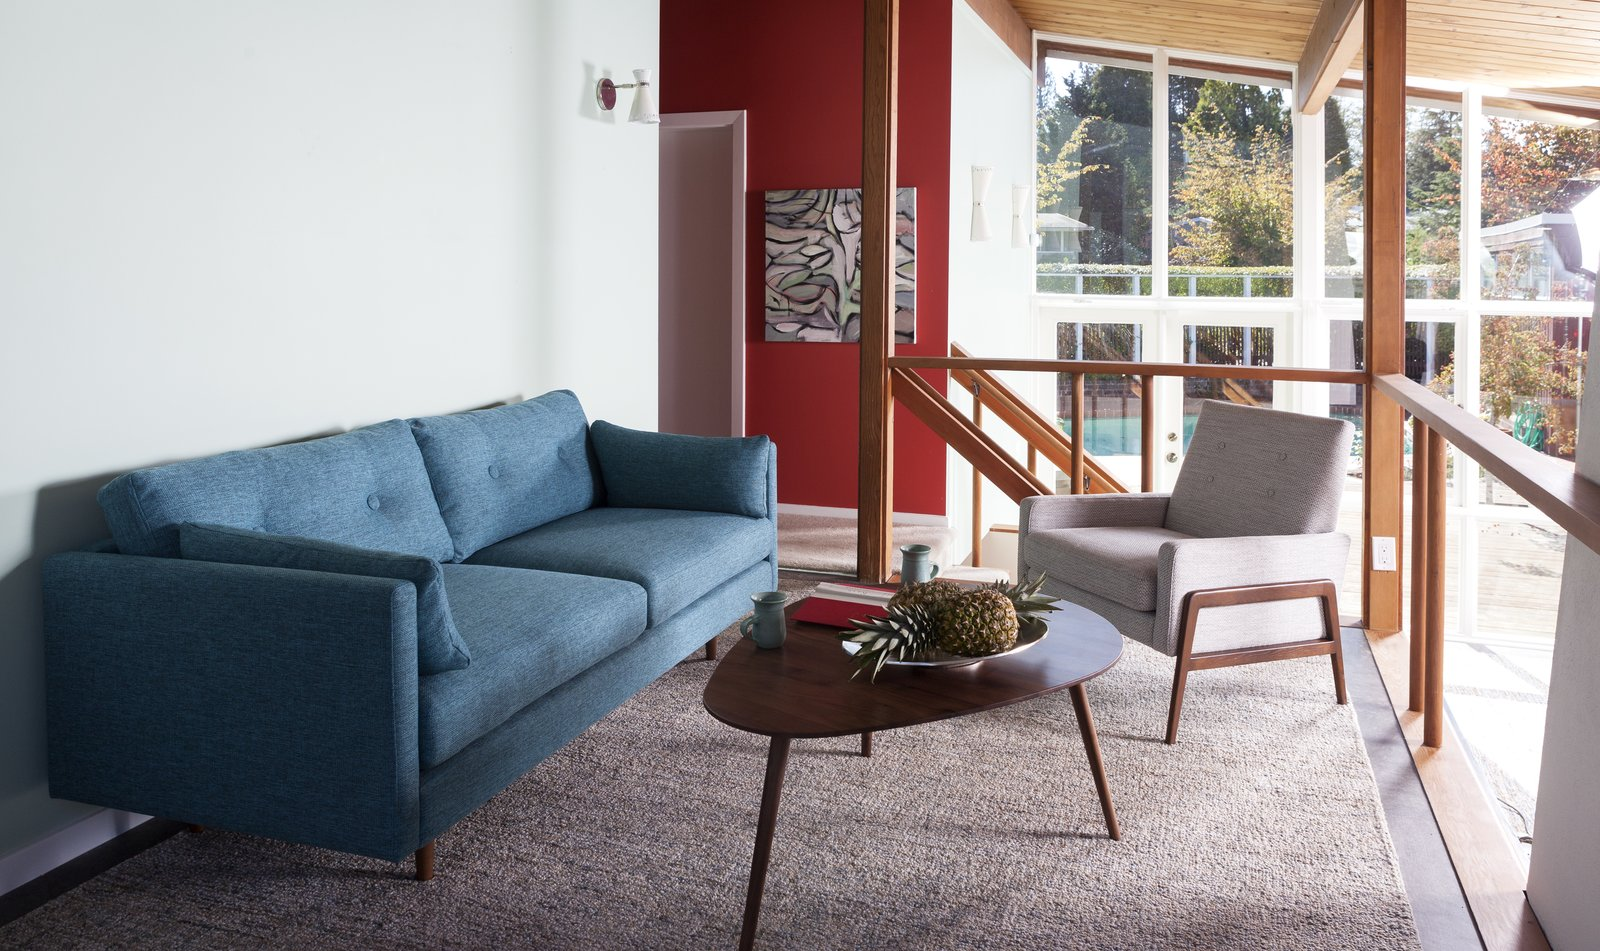 Embracing mid-century. Built in 1953, the Friedman House features a unique study/loft space that overlooks the open-concept first floor. Decorated in Article's mid-century modern pieces, it's like taking a step back through time. Anton sofa, $1149; Amoeba table, $299; Nord chair, $499  Photo 3 of 7 in Styling a Rescued Mid-Century Gem